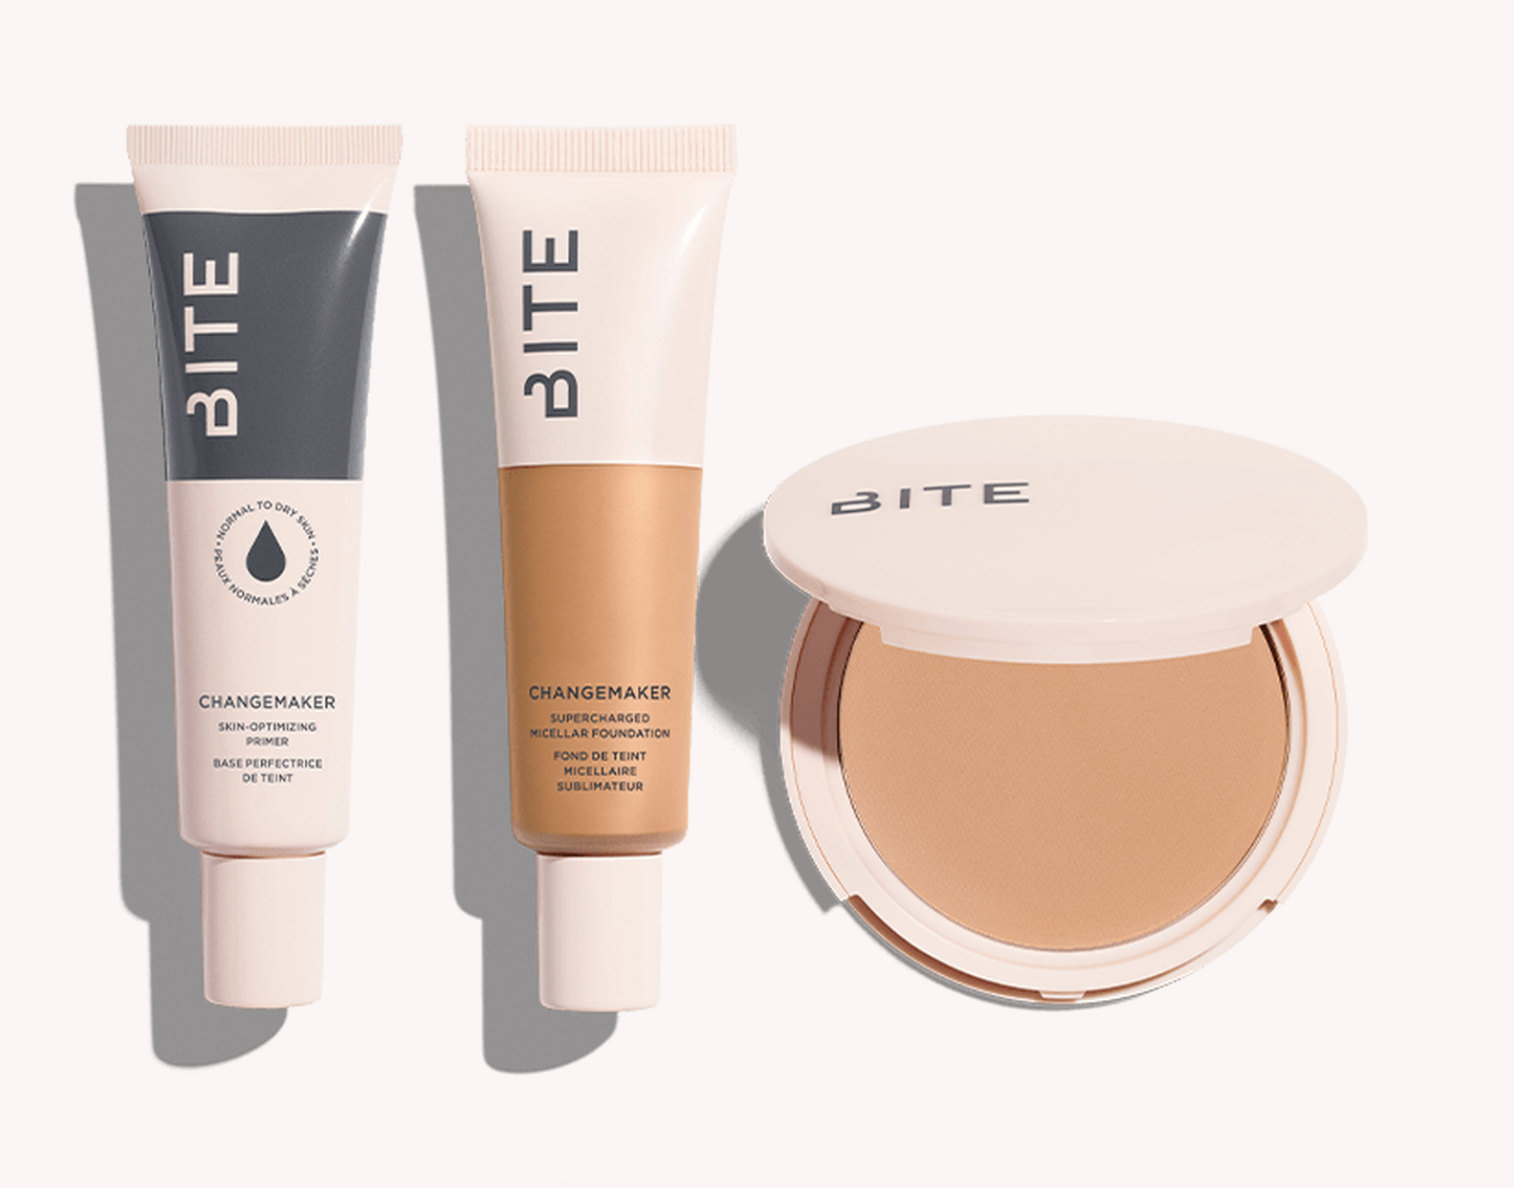 A flat-lay featuring Bite Beauty's new Changemaker Complexion System of foundation and primer products.